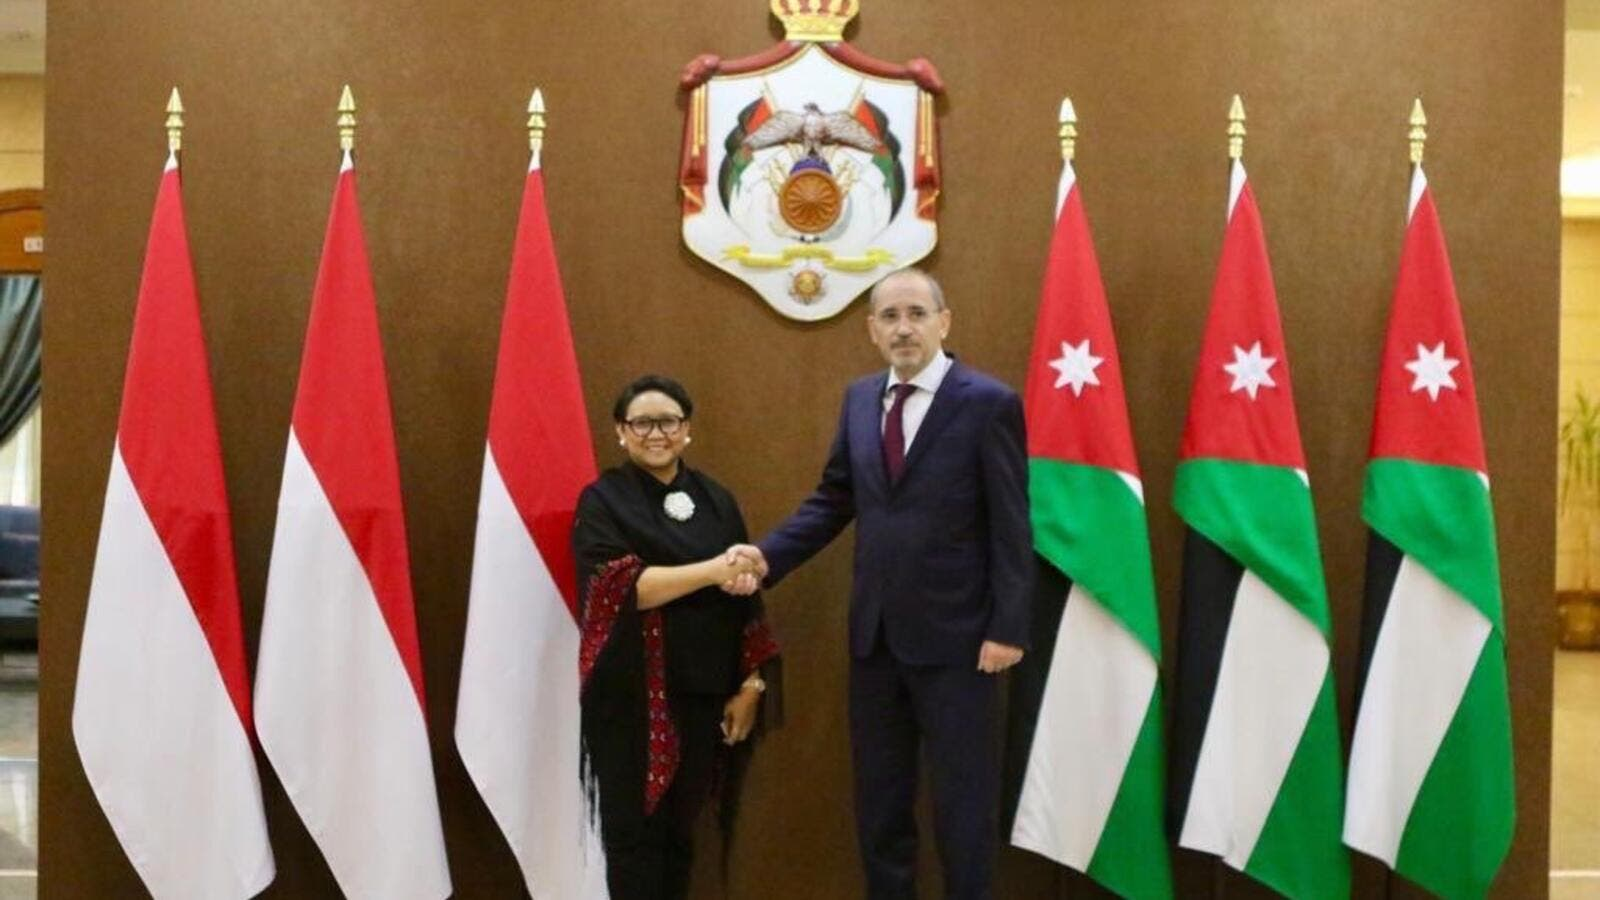 Foreign Minister Ayman Safadi (left) with the Indonesian counterpart Retno Marsudi on Tuesday in Amman (Twitter/ @AymanHsafadi)